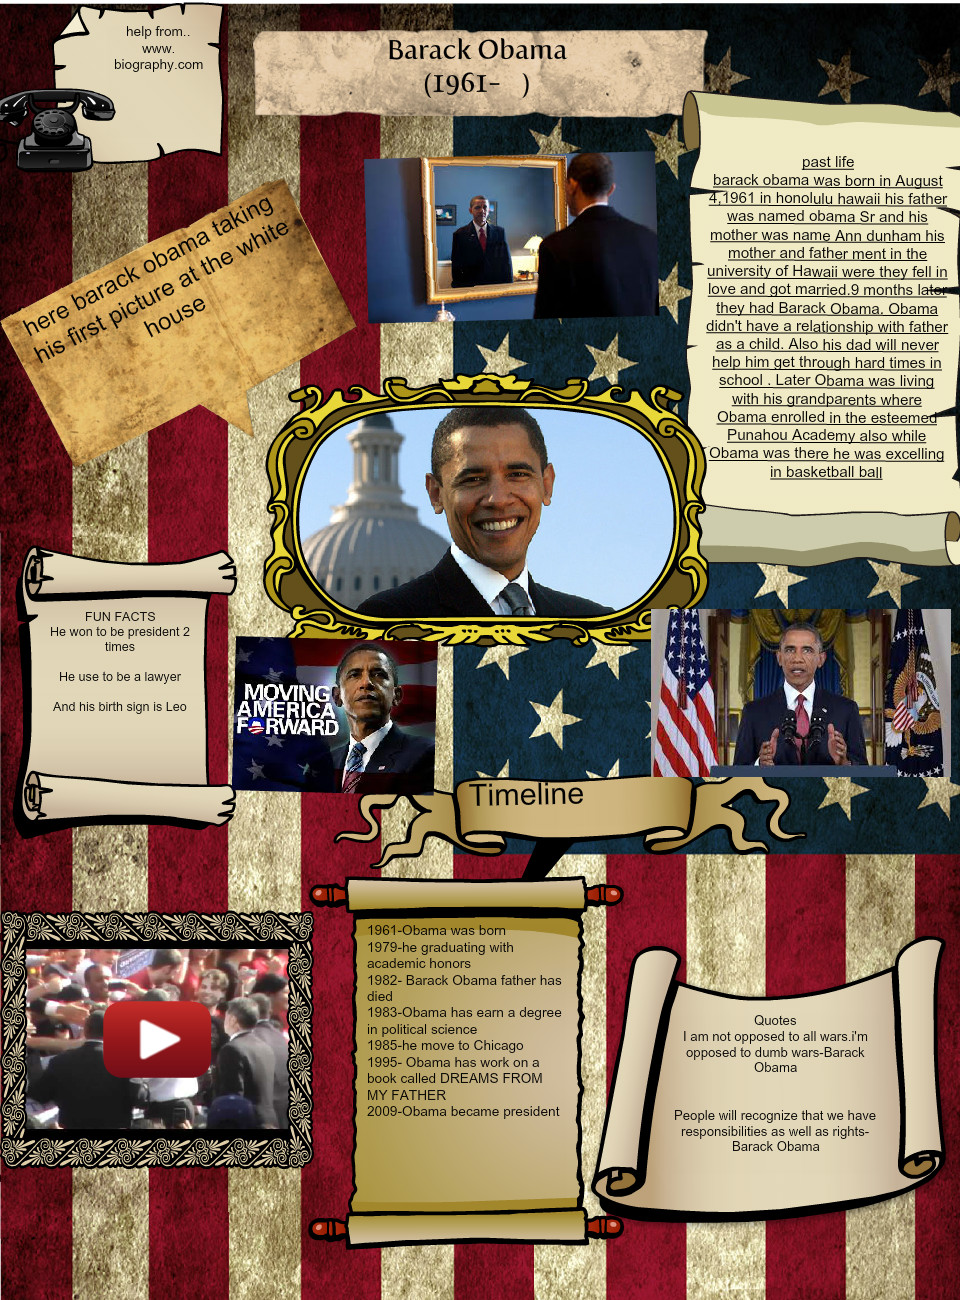 [2014] amy saldana (2nd period): Barack Obama